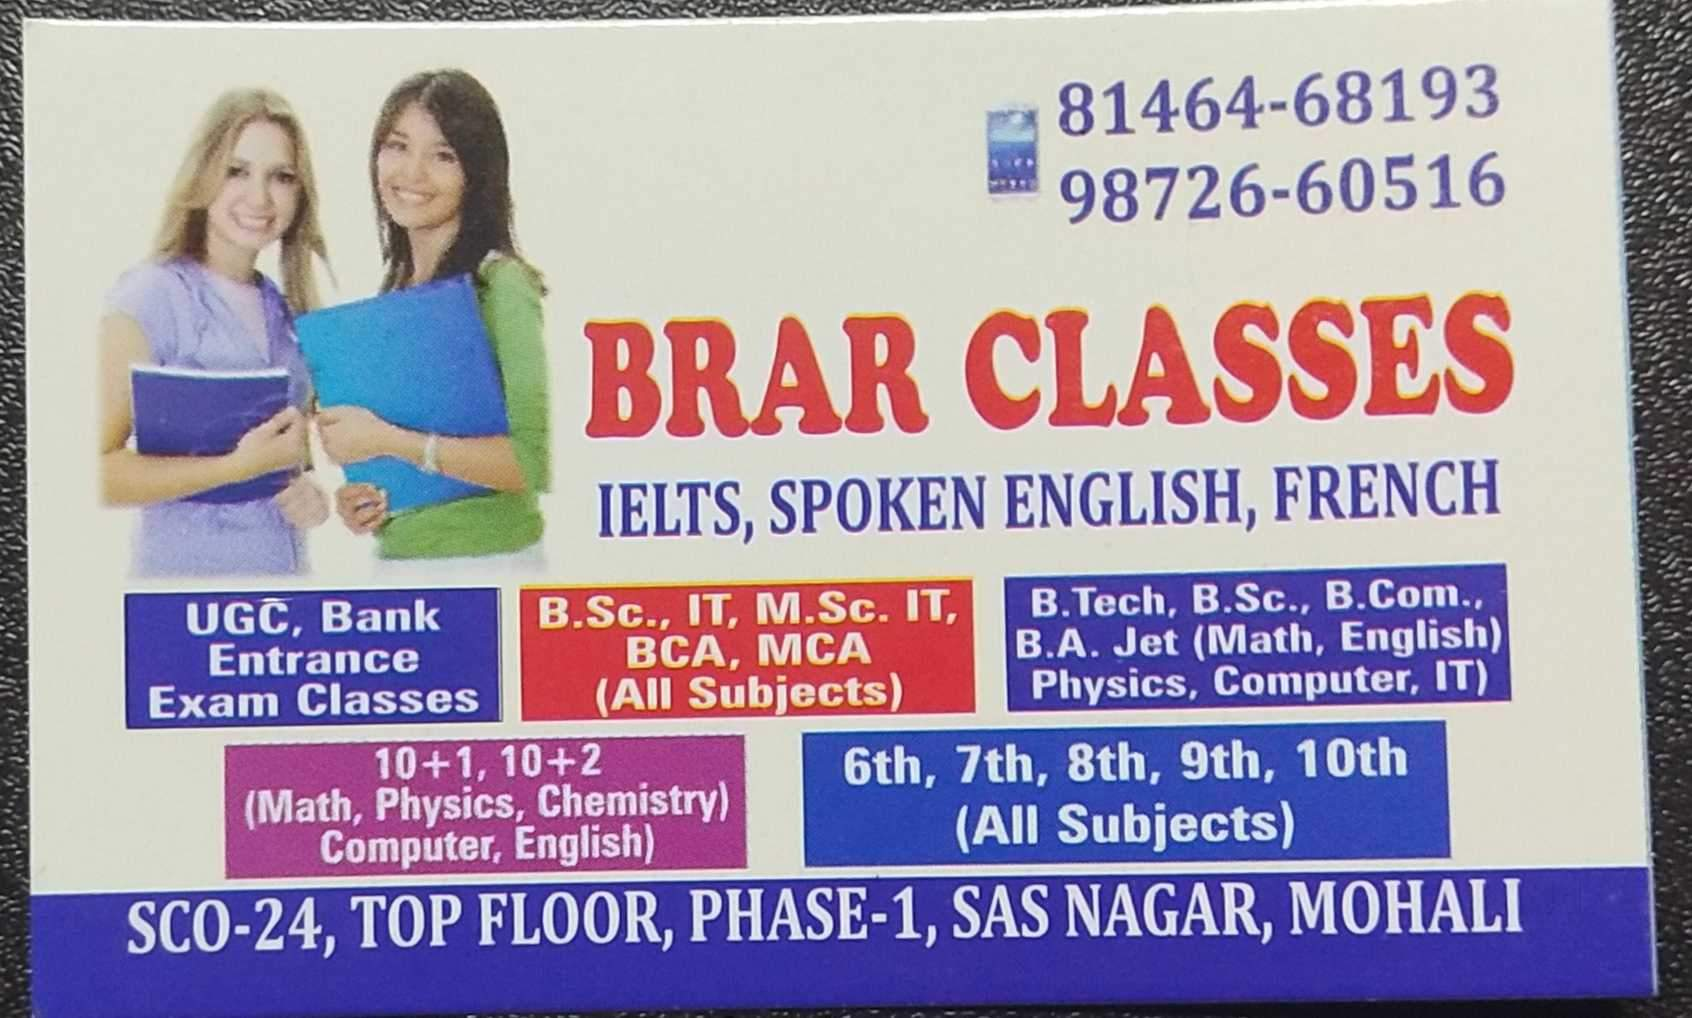 BRAR CLASSES Logo